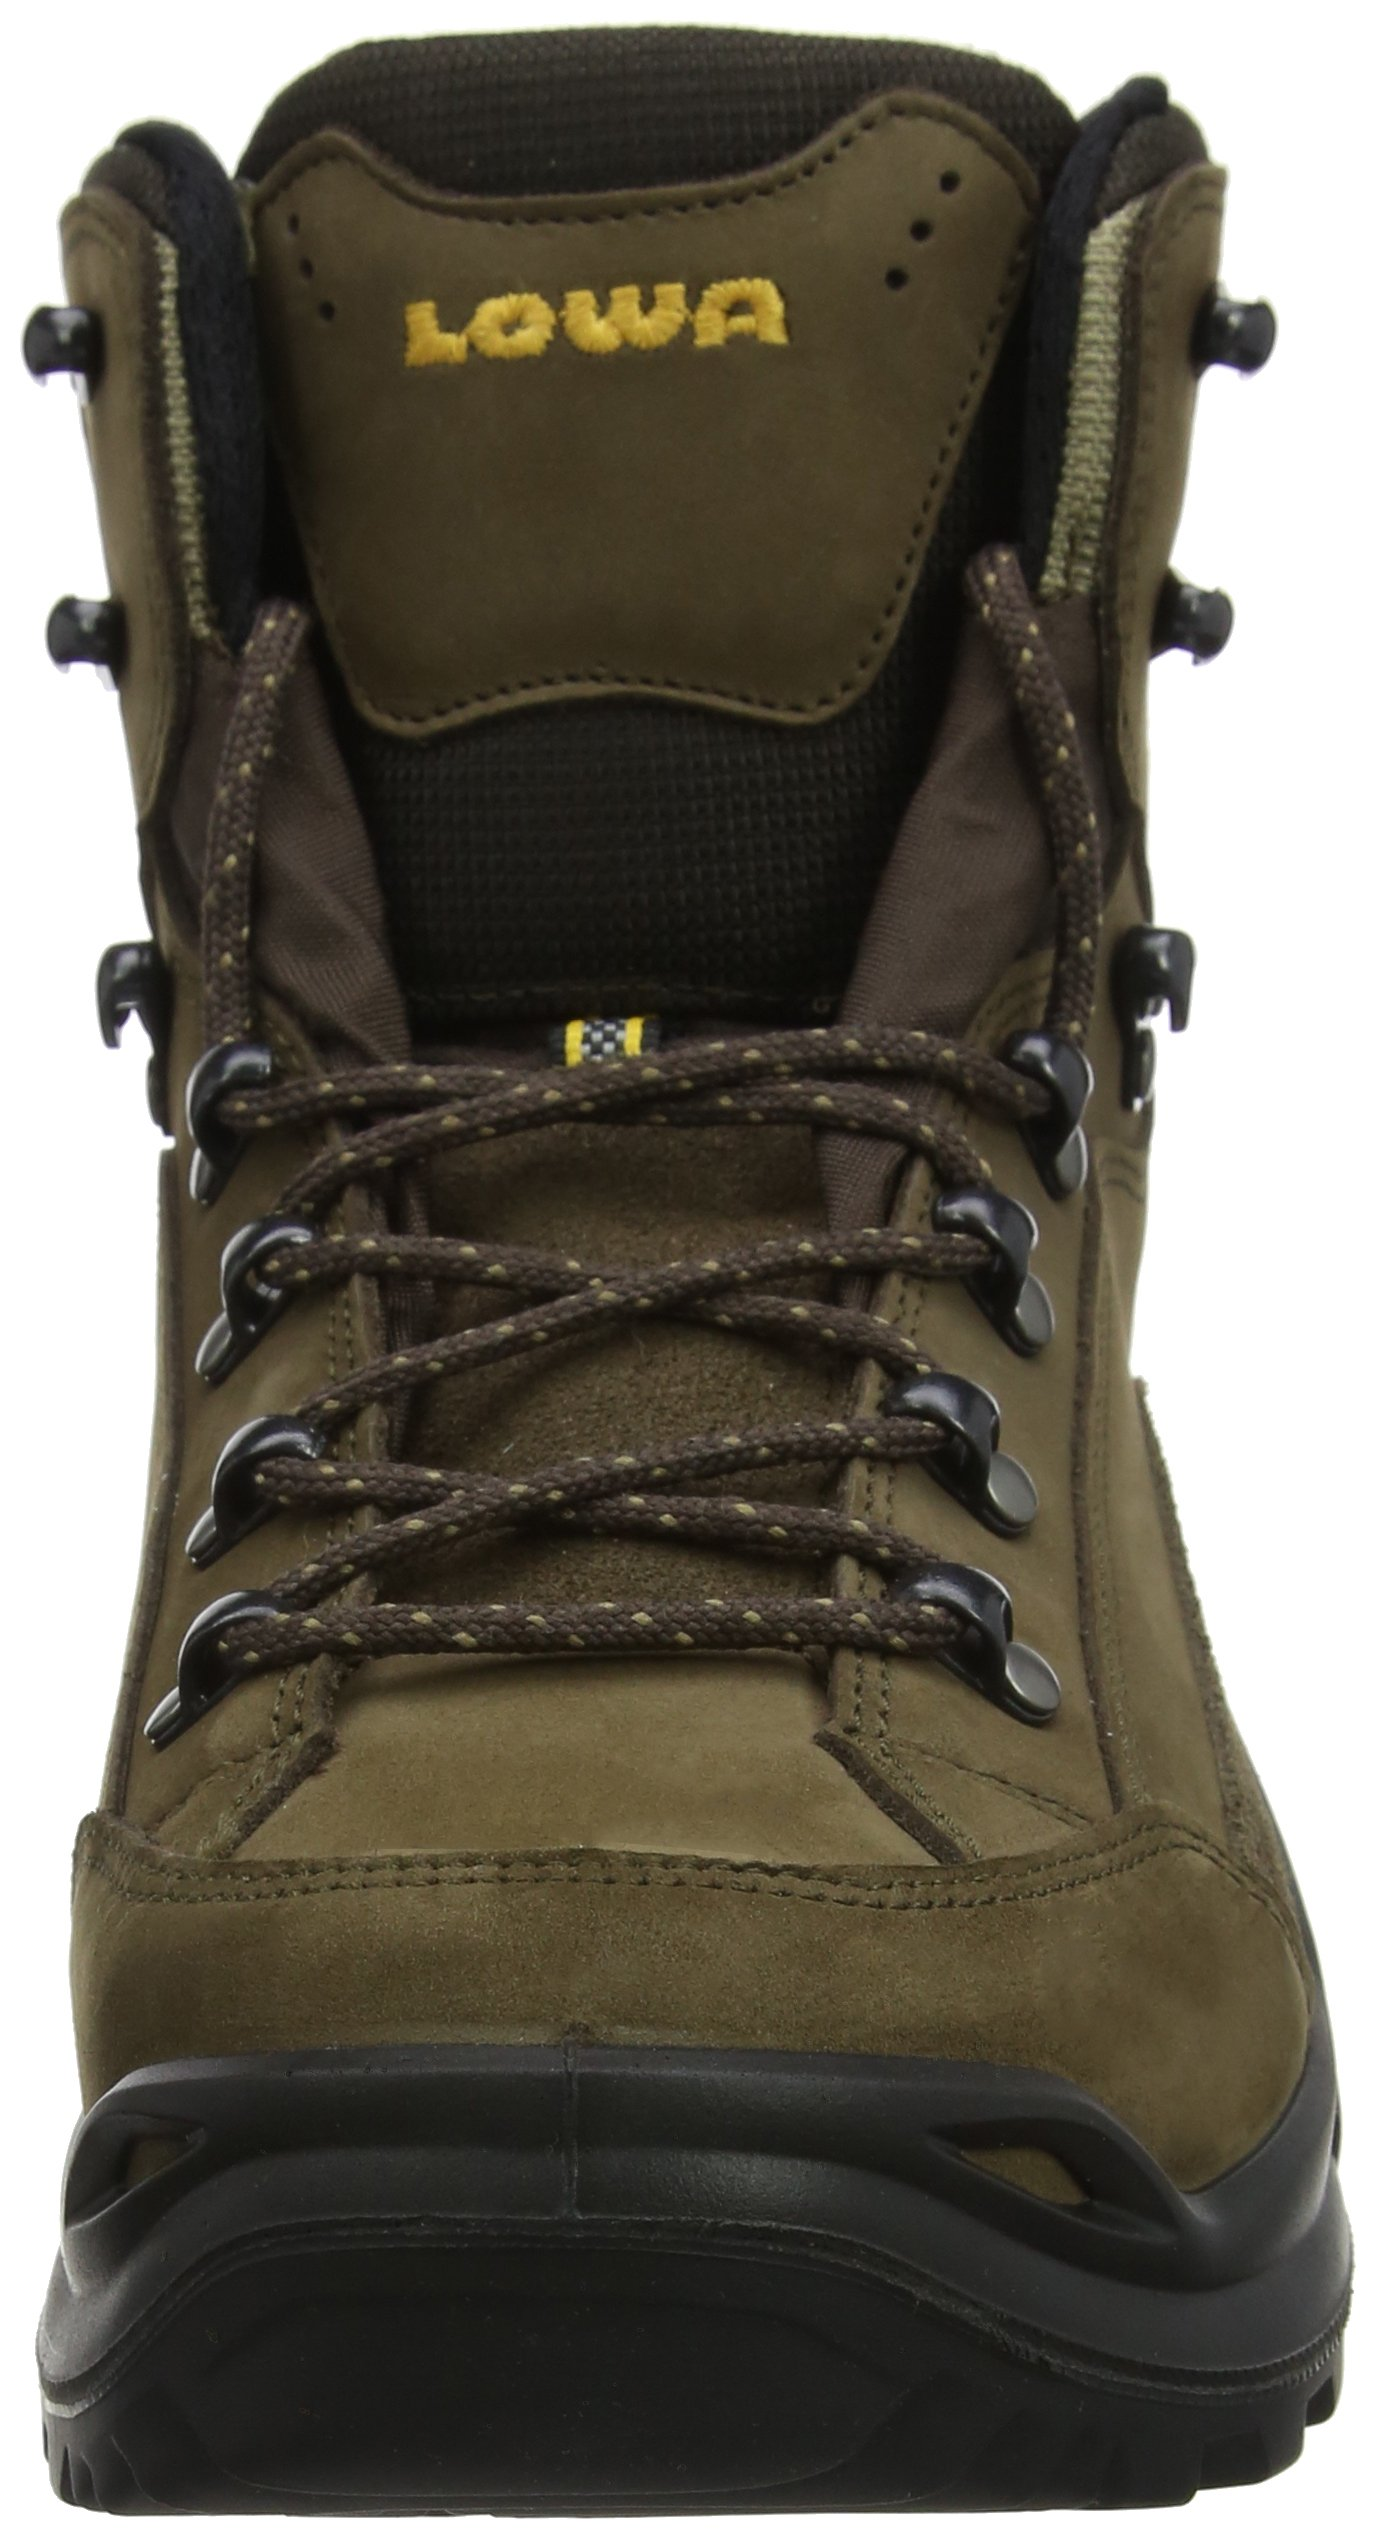 81Uovo2WUUL - Lowa Men's Renegade GTX Mid High Rise Hiking Boots